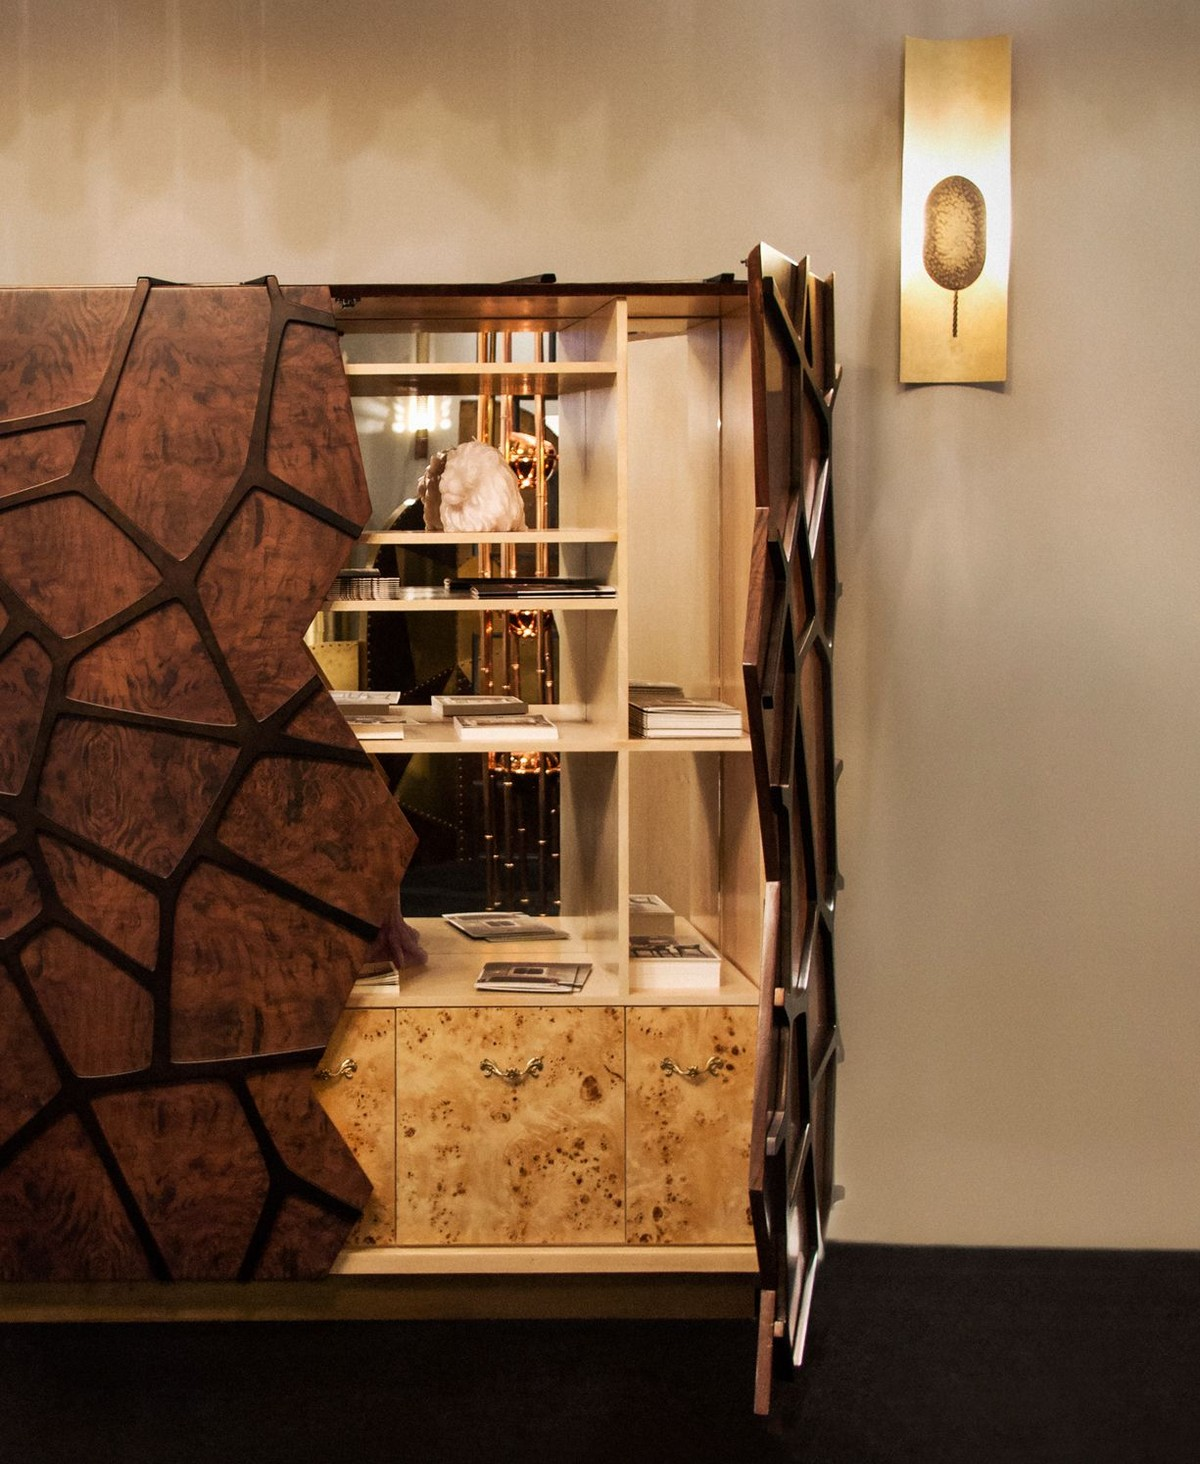 A Celestial Living Room On Earth: The Orion Cabinet by Brabbu